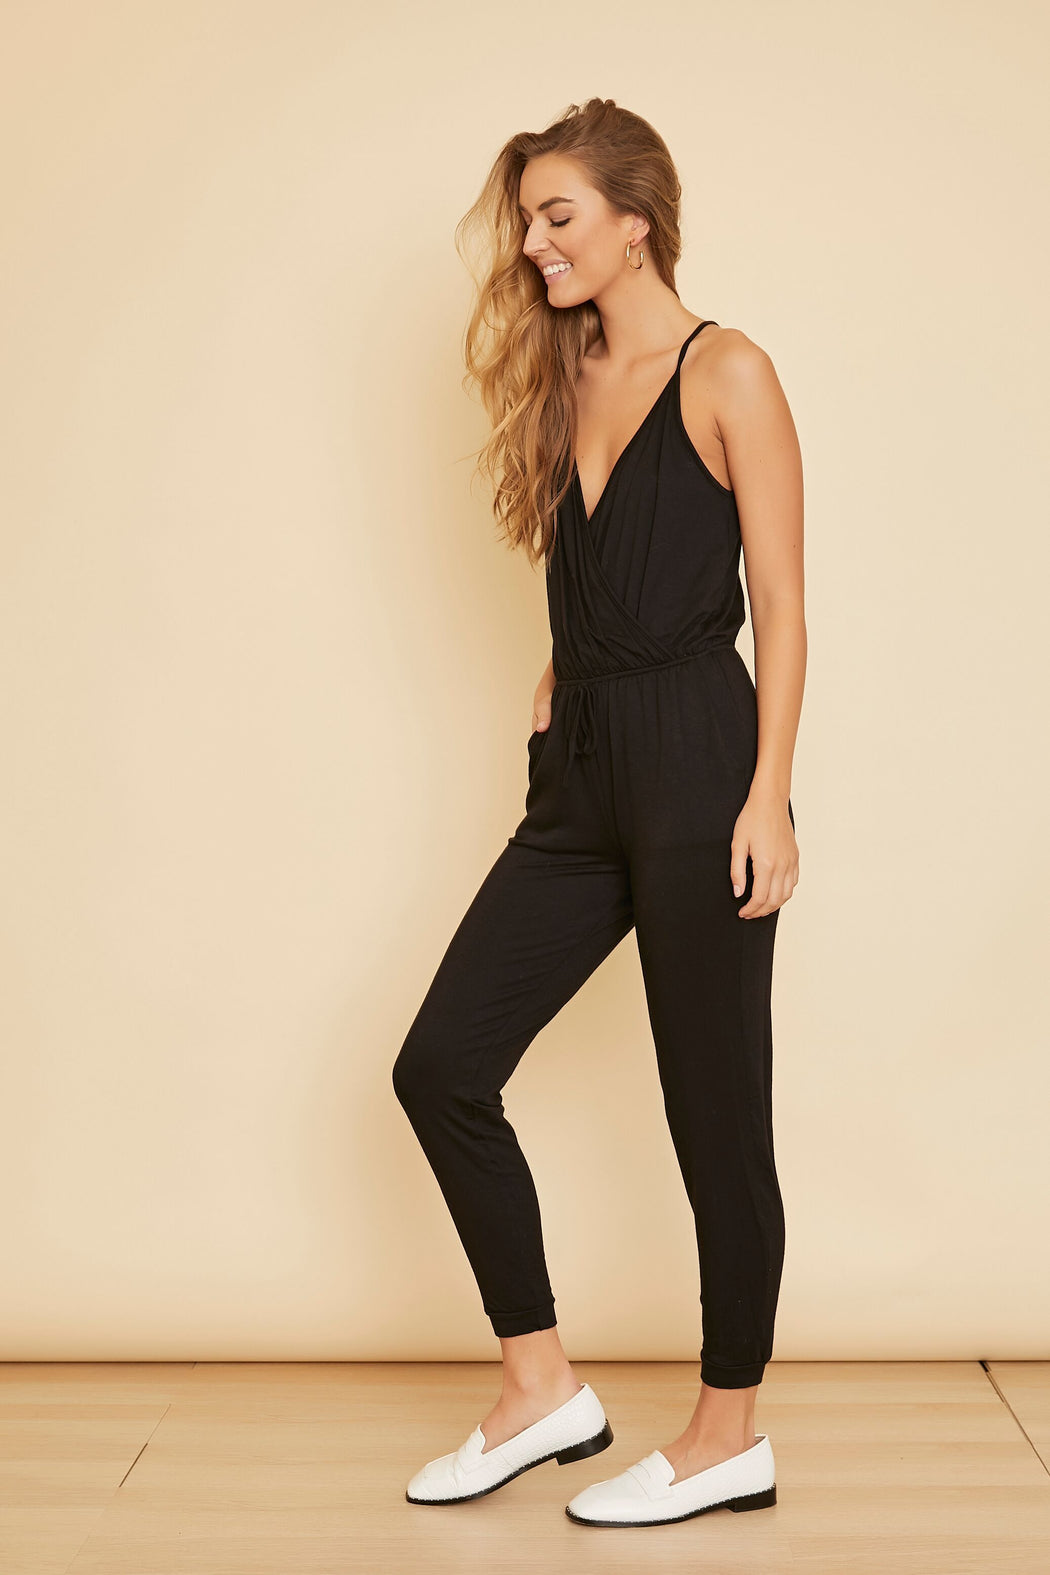 Nadia Sleeveless Jumpsuit - wearNYLA